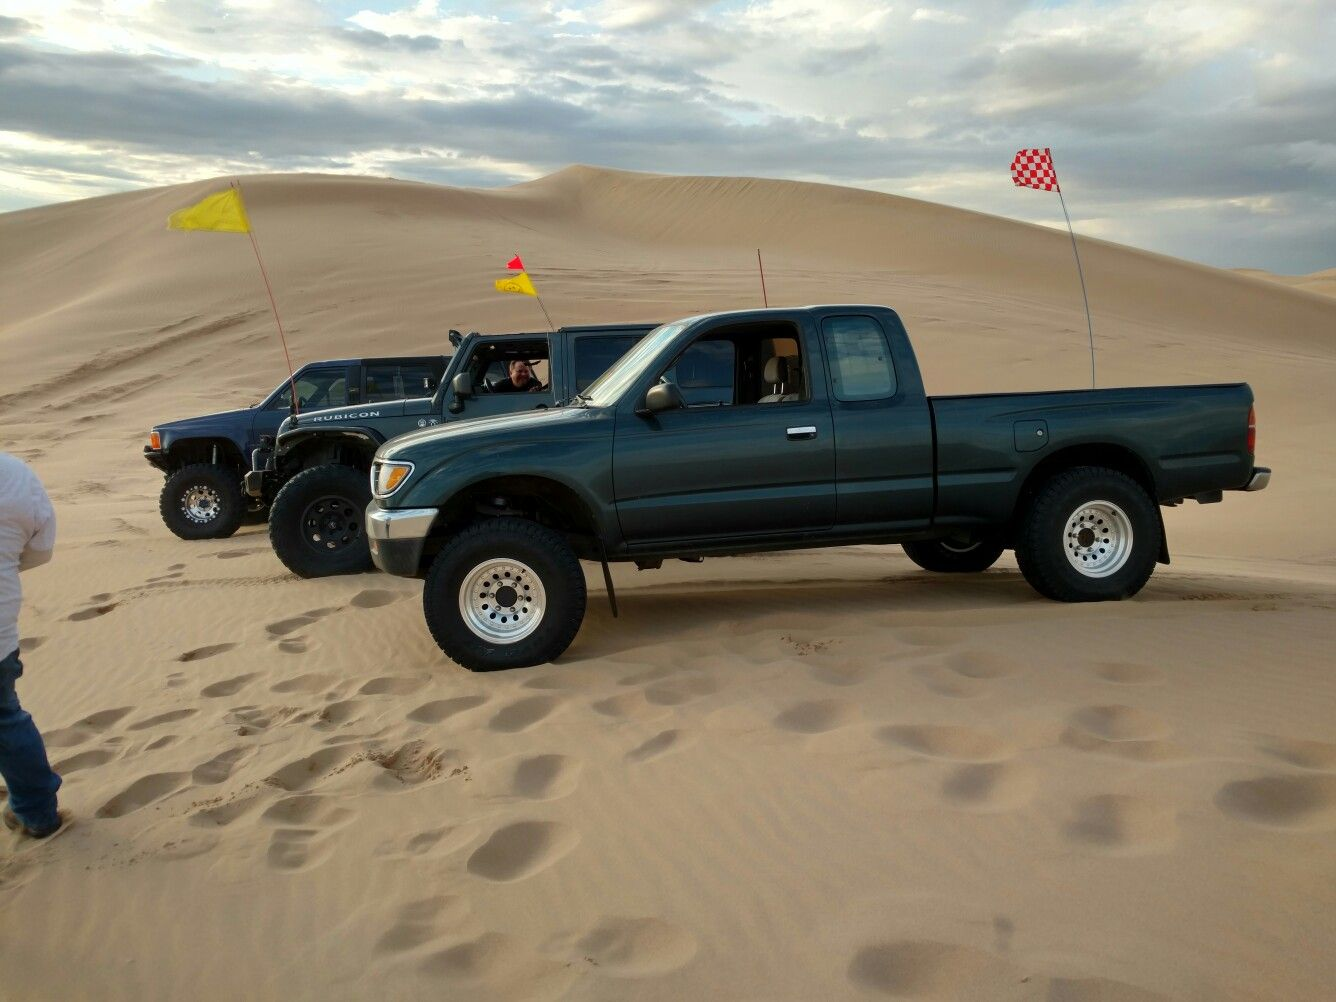 1996 toyota tacoma 4x4 in the sand dunes glamis california